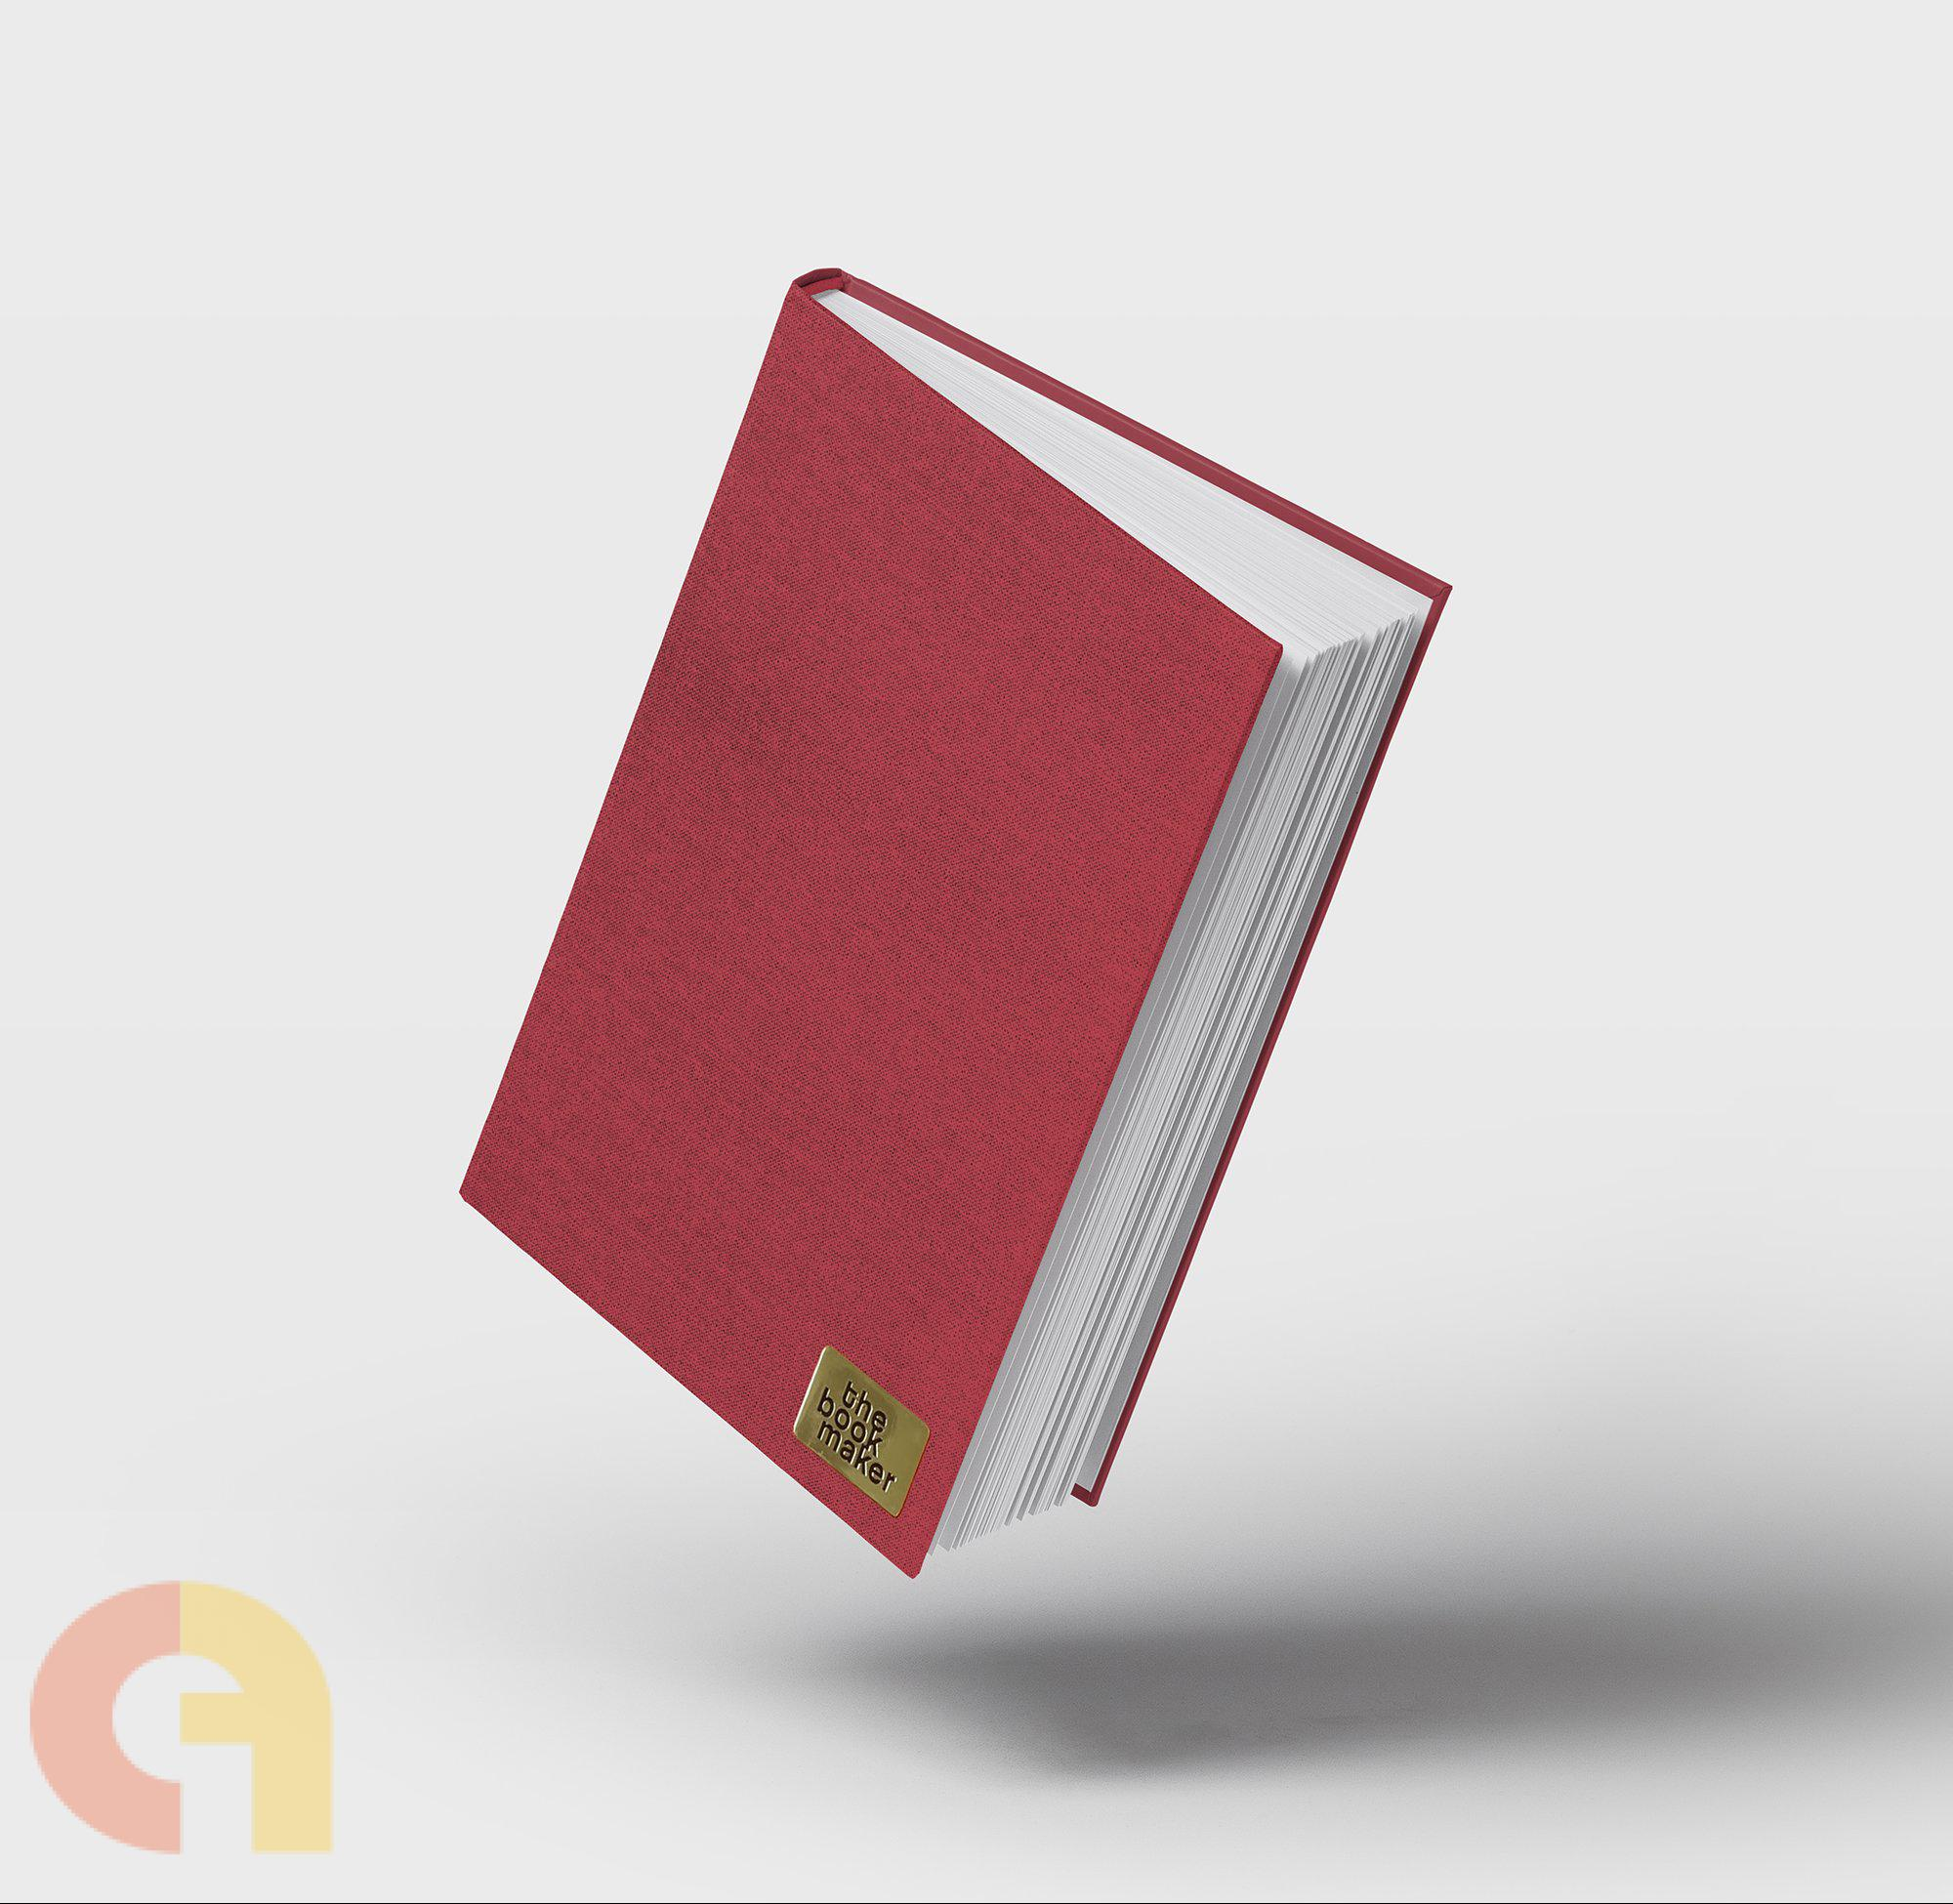 Fabric Collection: Ruby (Dotted Bullet Journal; Hard bound; 160 pages - A5)